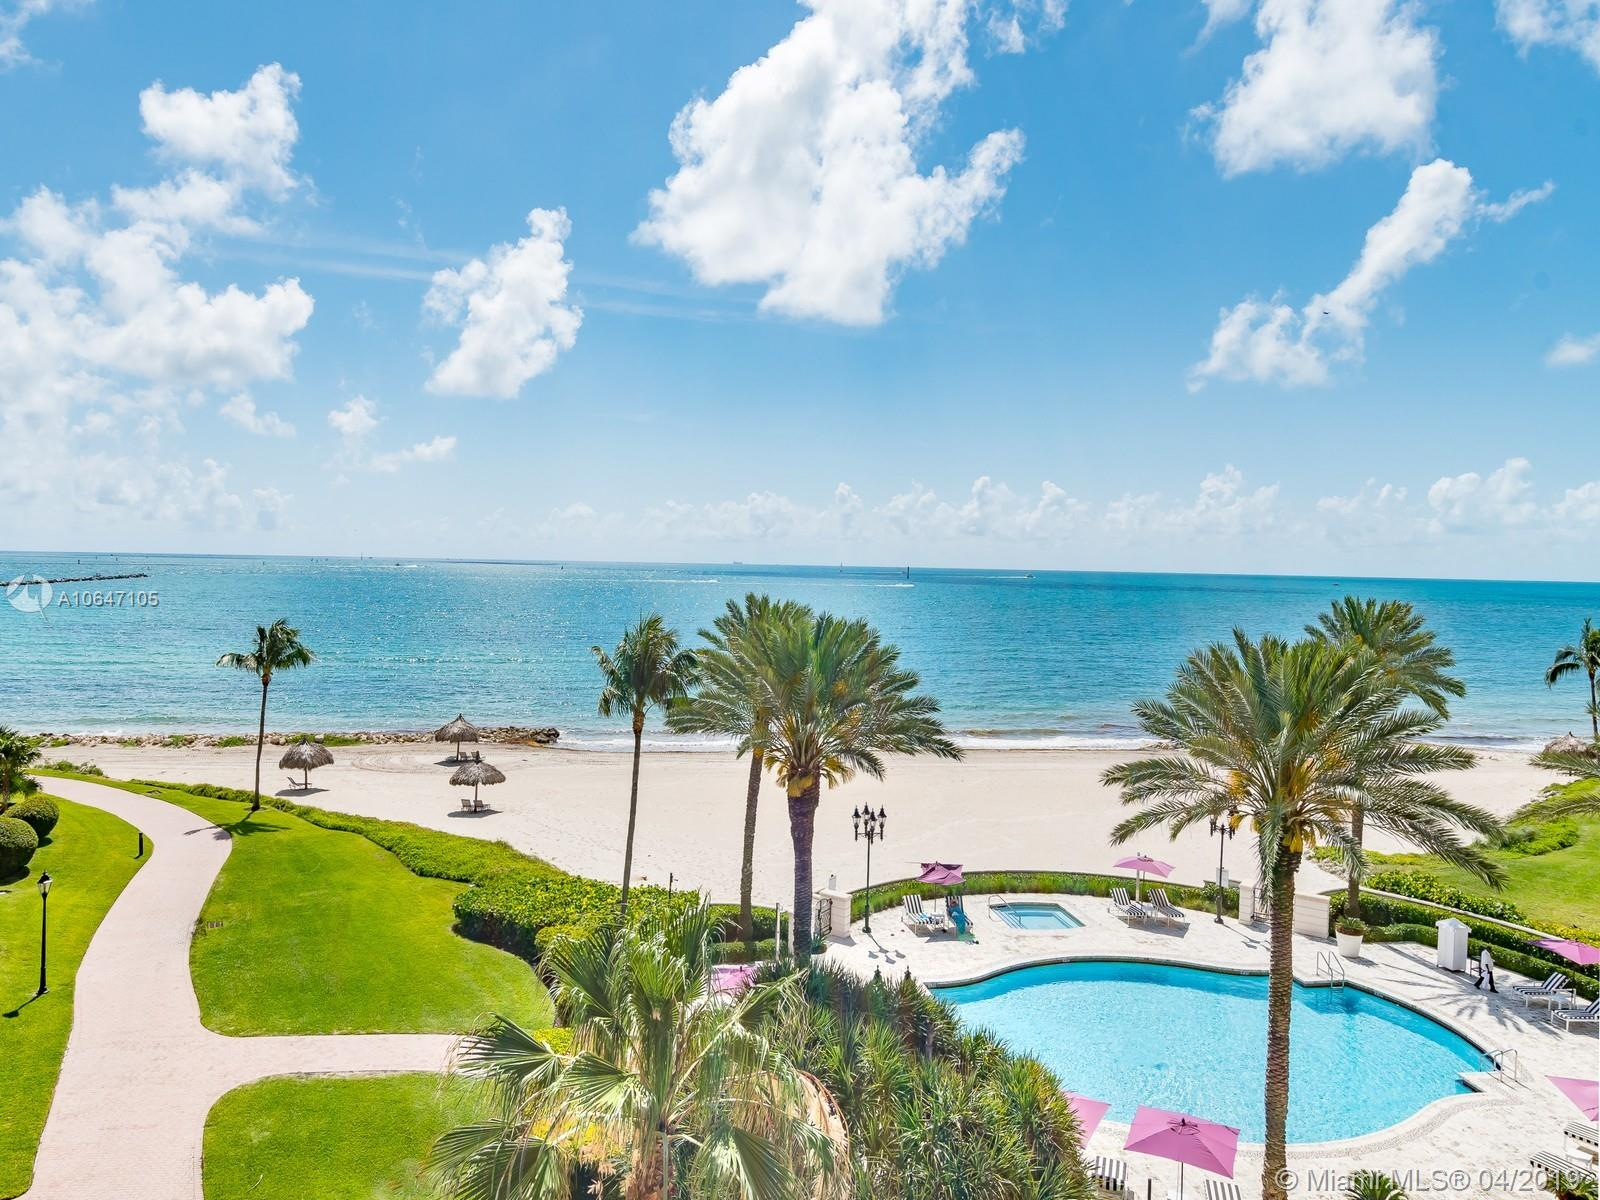 7600  Fisher Island Dr #7641 For Sale A10647105, FL